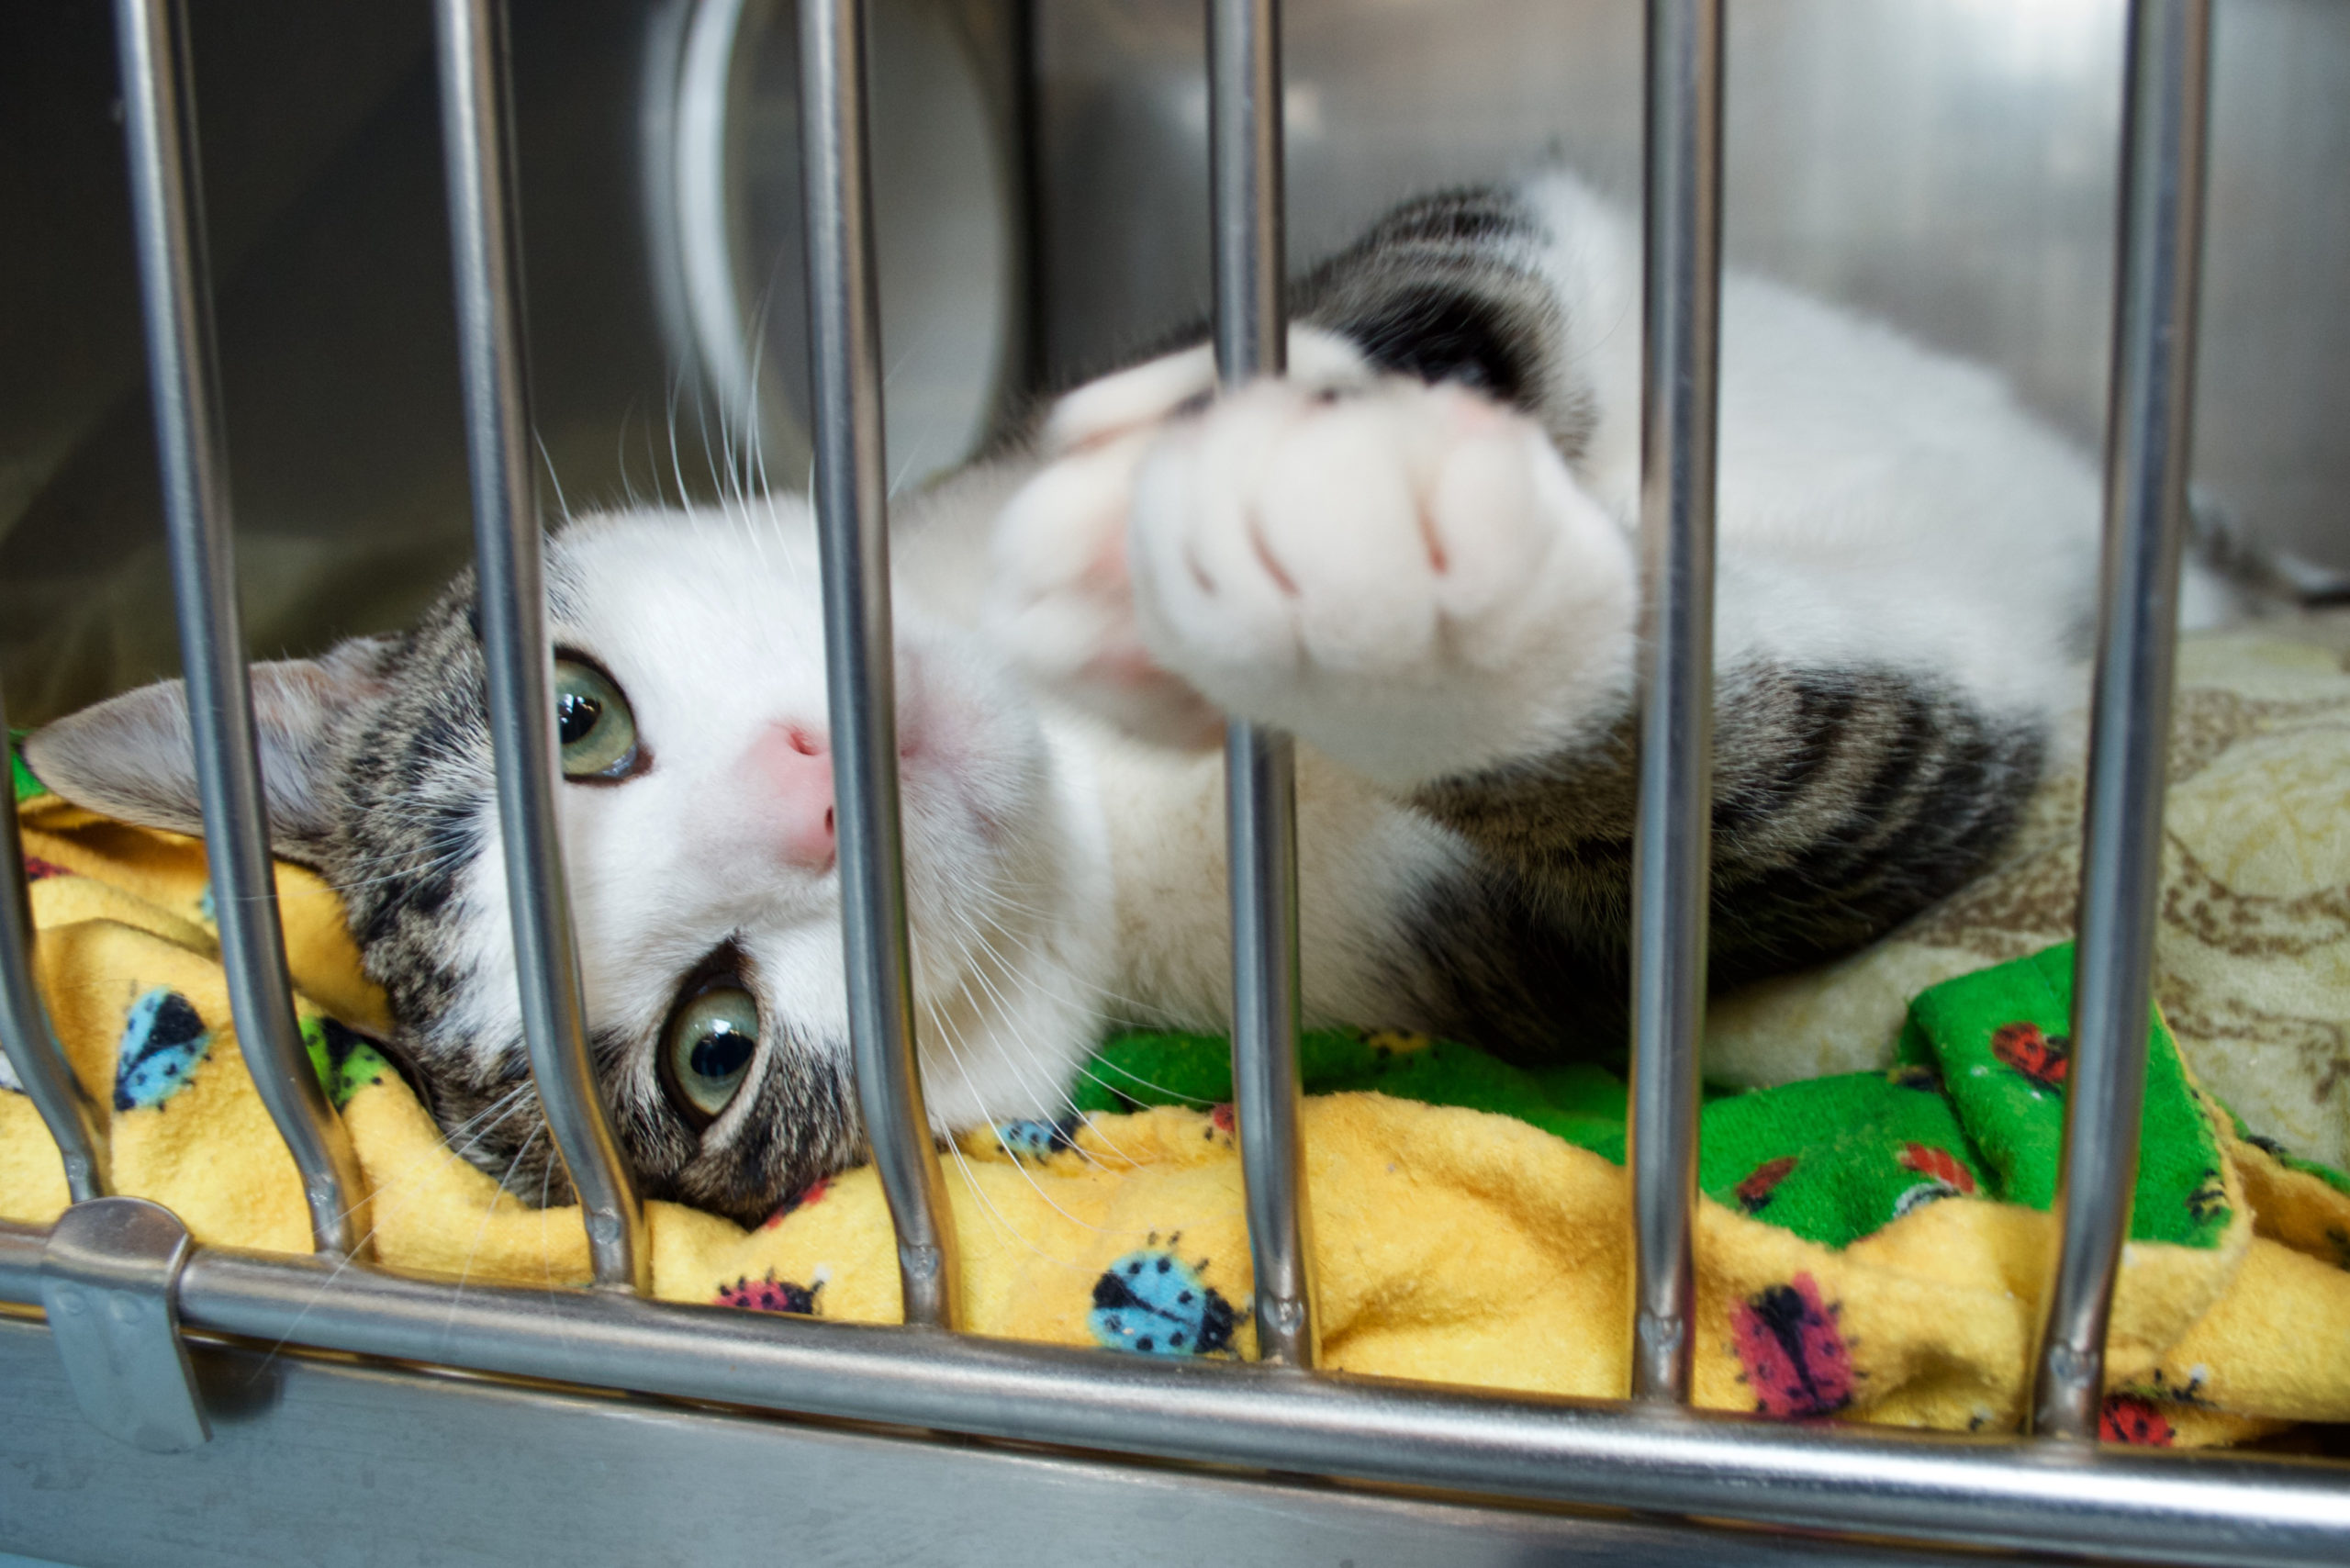 A rescue kitten reaches a paw out of its cage at an animal rescue